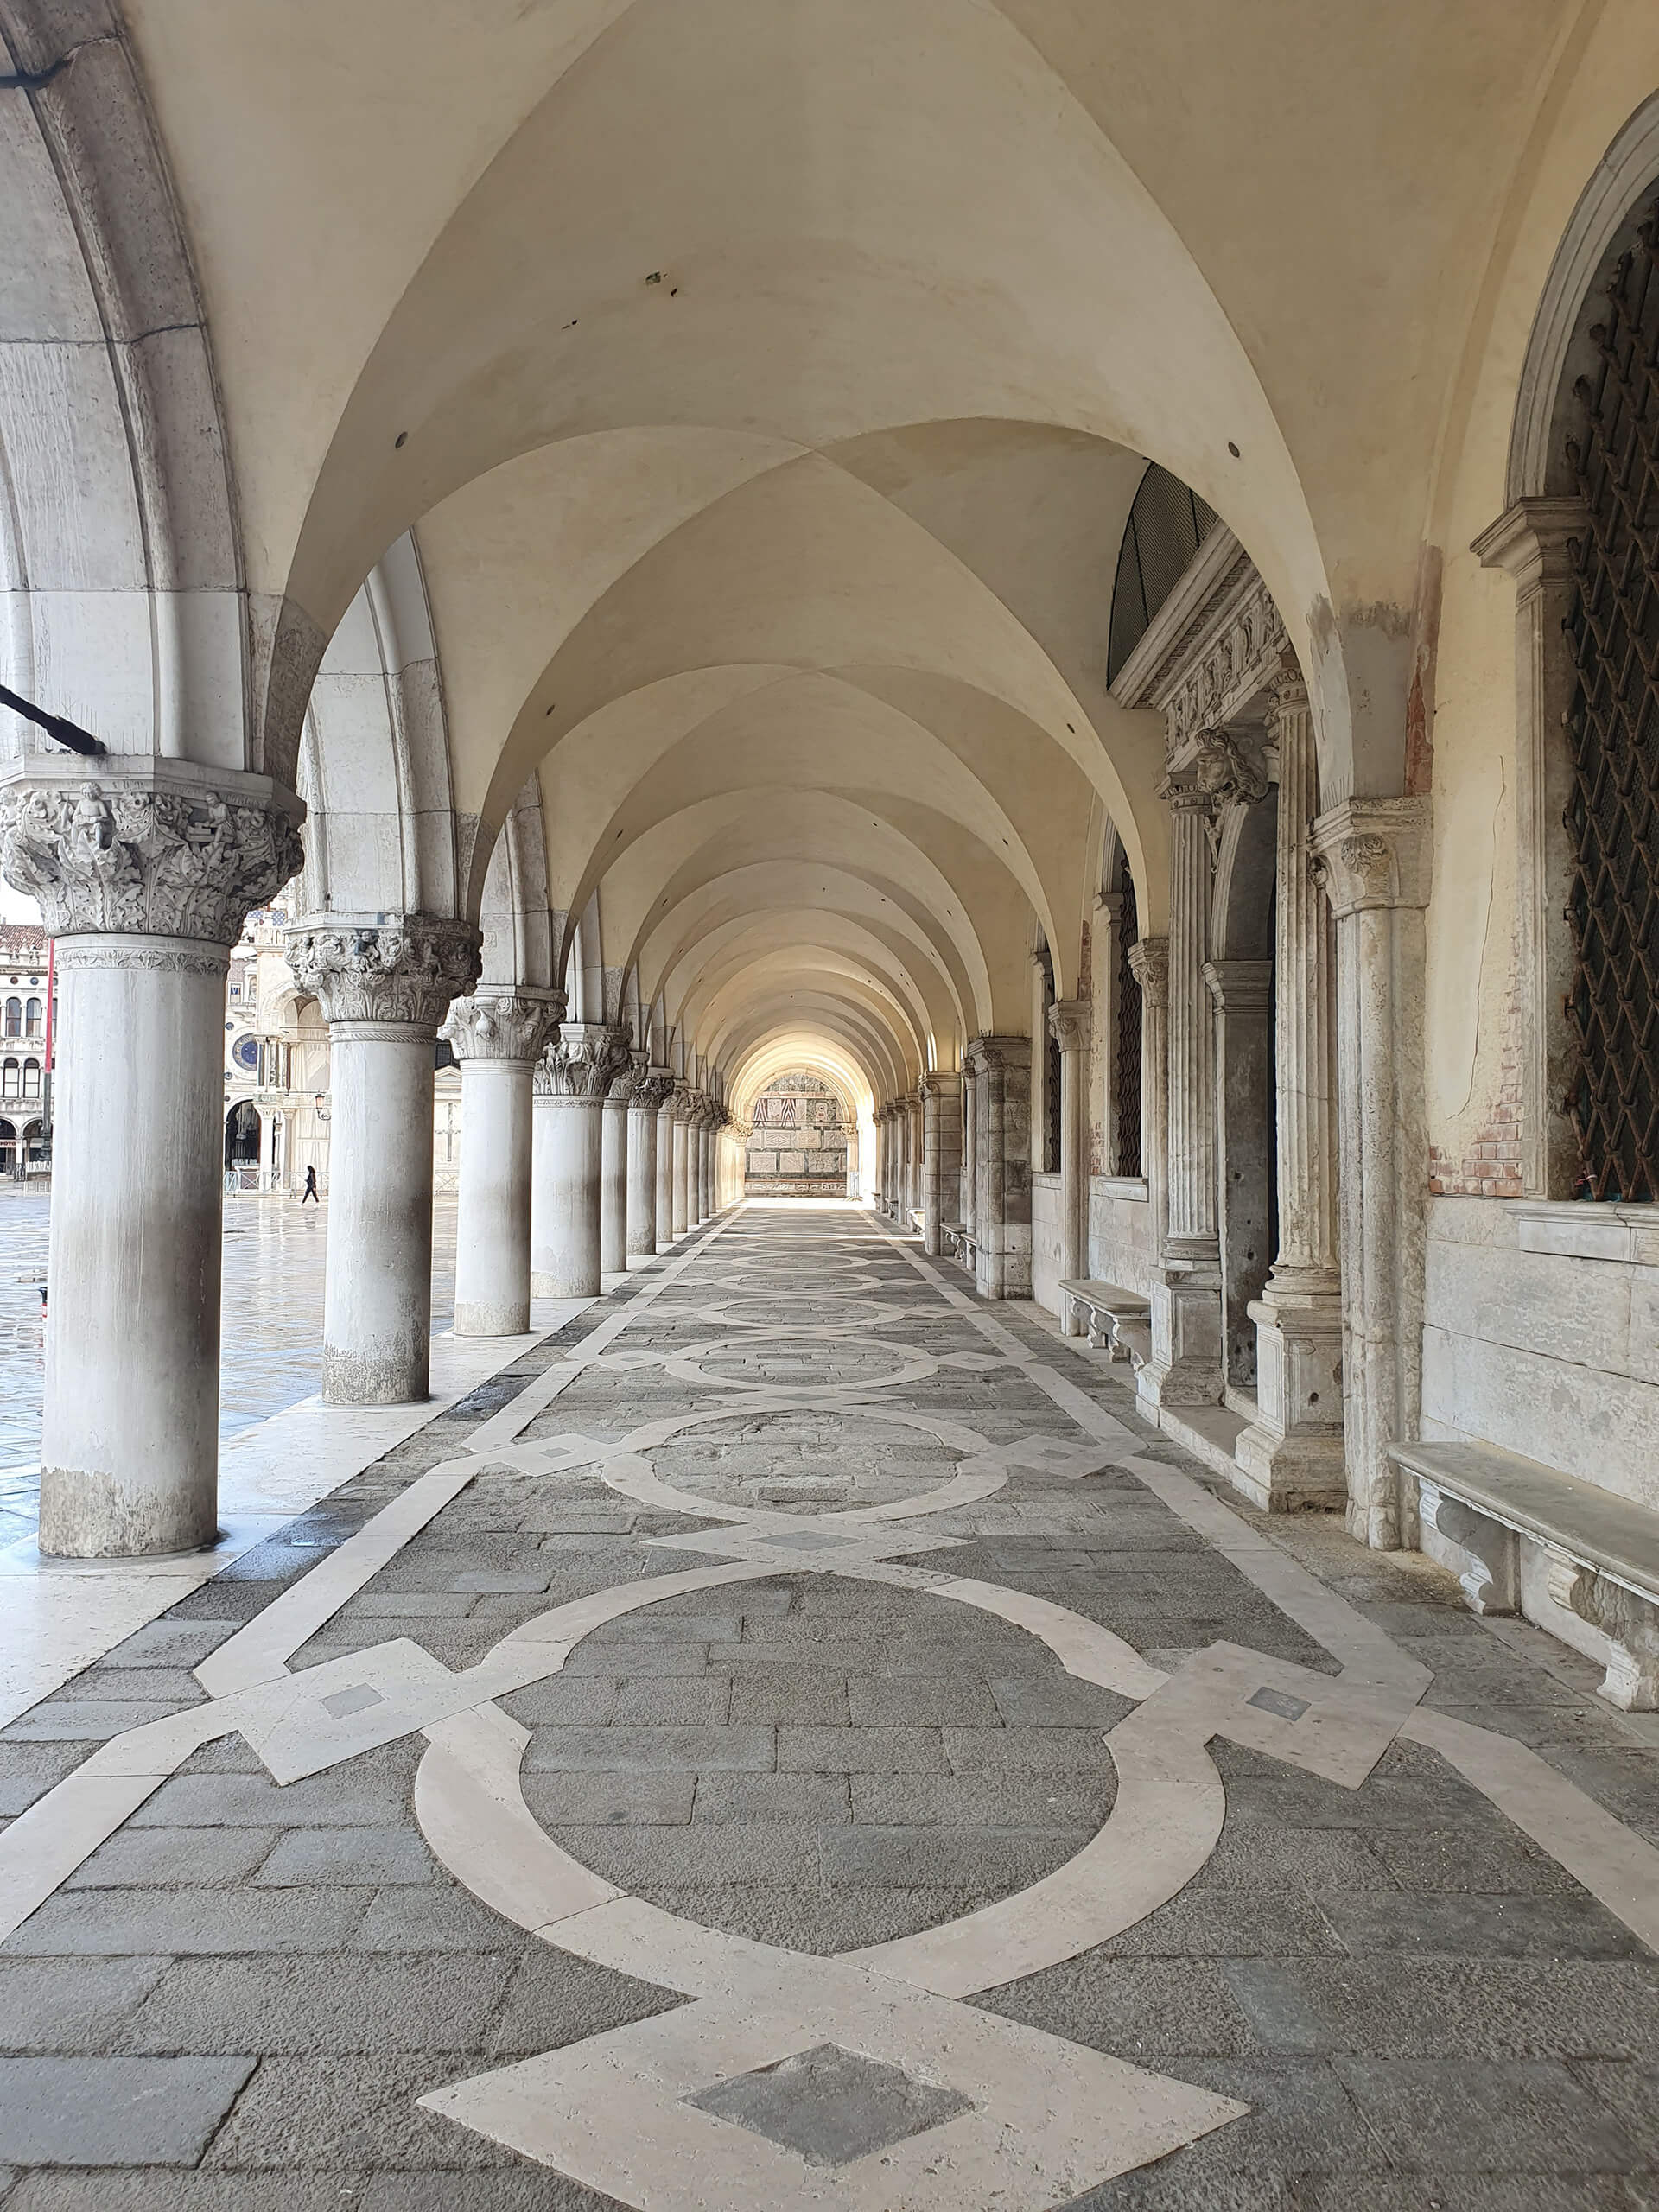 A vacant arcade during the Venetian lockdown | Venice reopens post COVID-19 lockdown | STIRworld